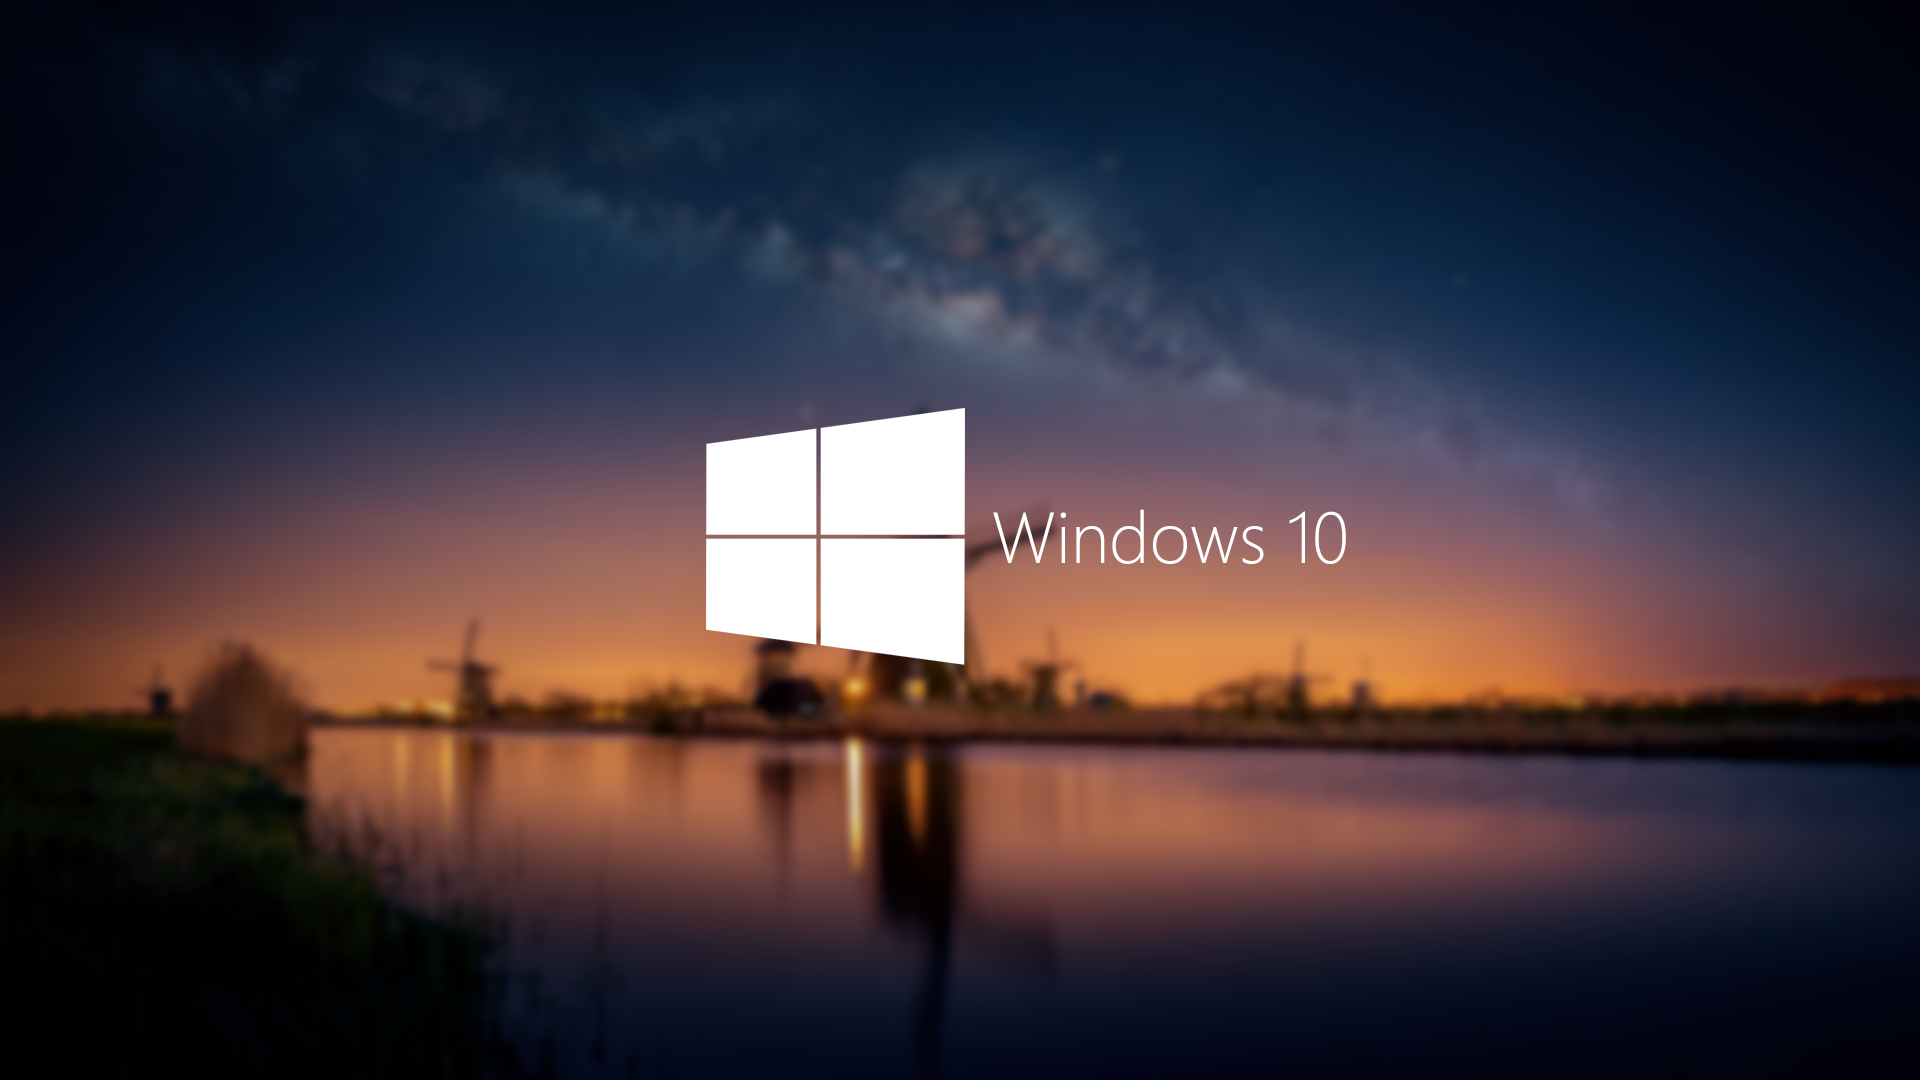 Windows-10-HD-Wallpaper-23